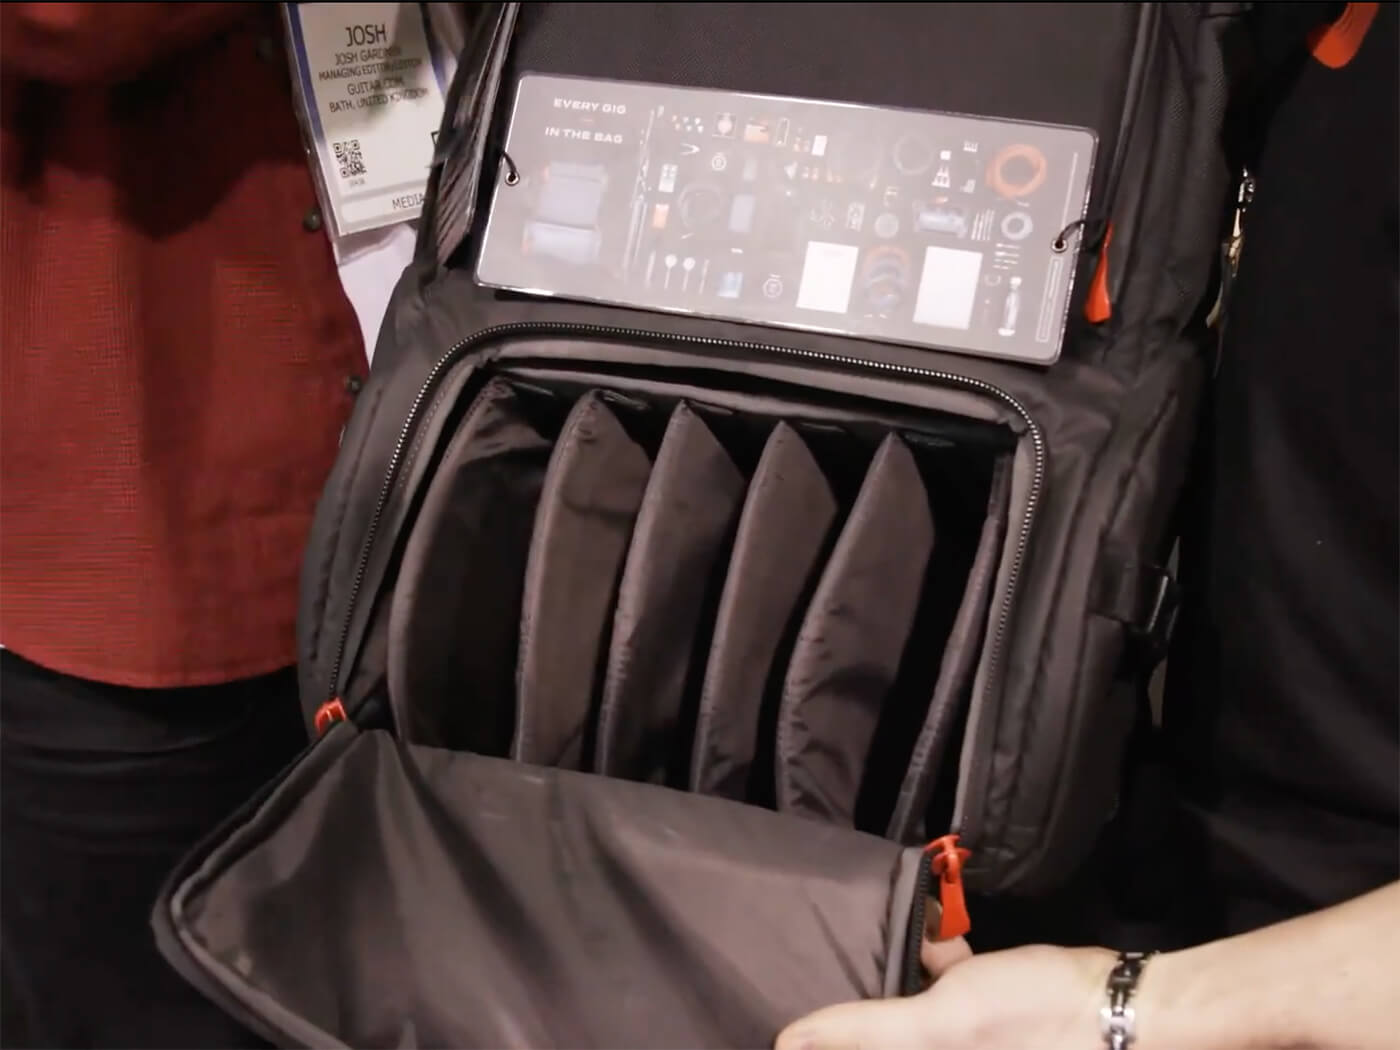 NAMM 2020 Video: D'Addario makes gigging easier with the Backline and LokNob